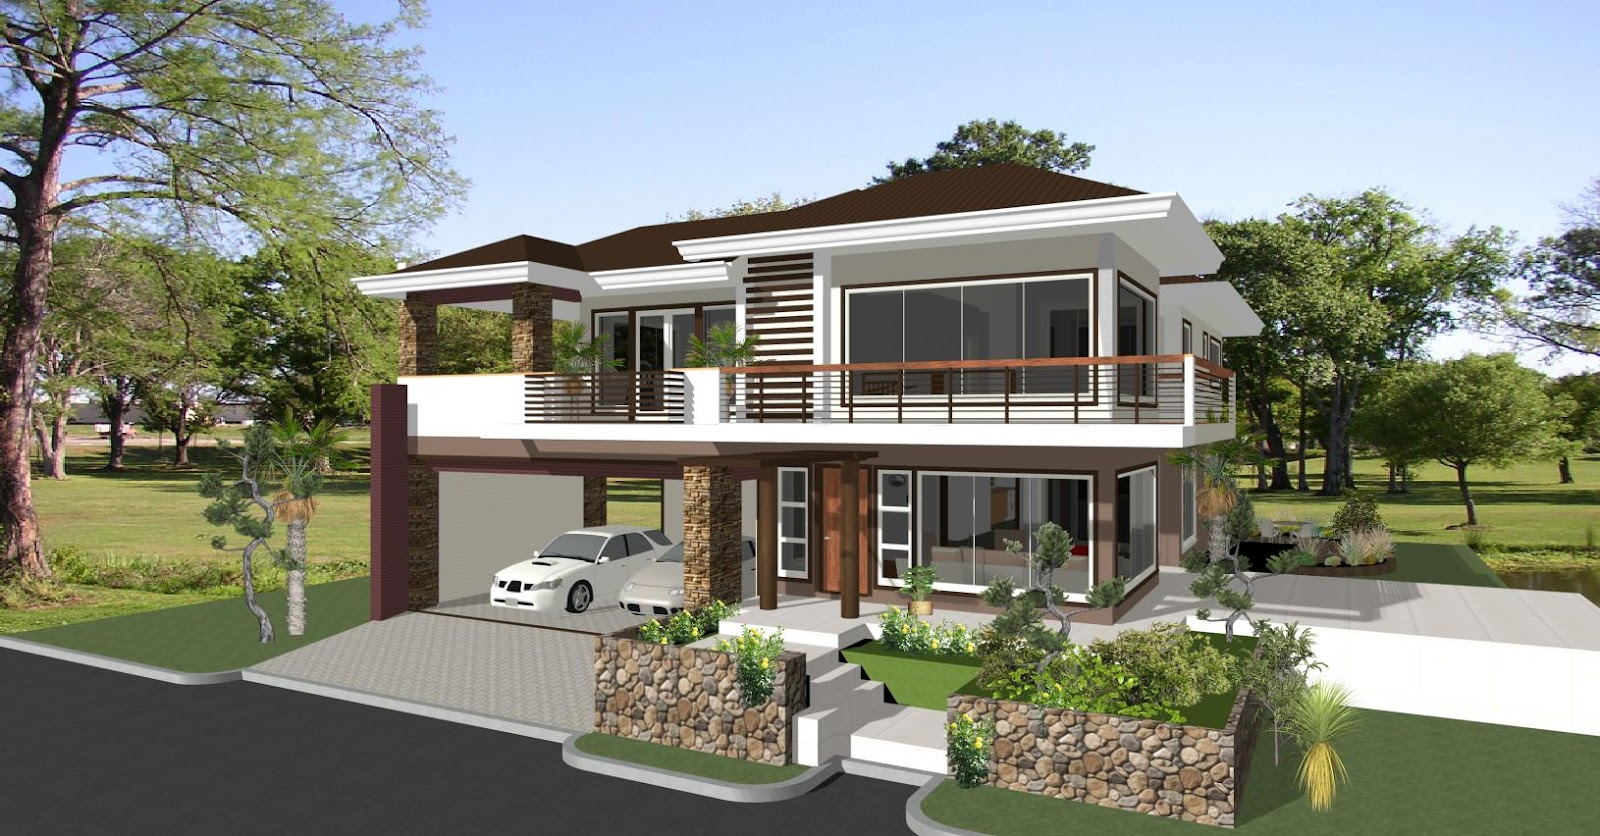 Emejing Home Construction Design Pictures - Decorating Design ...